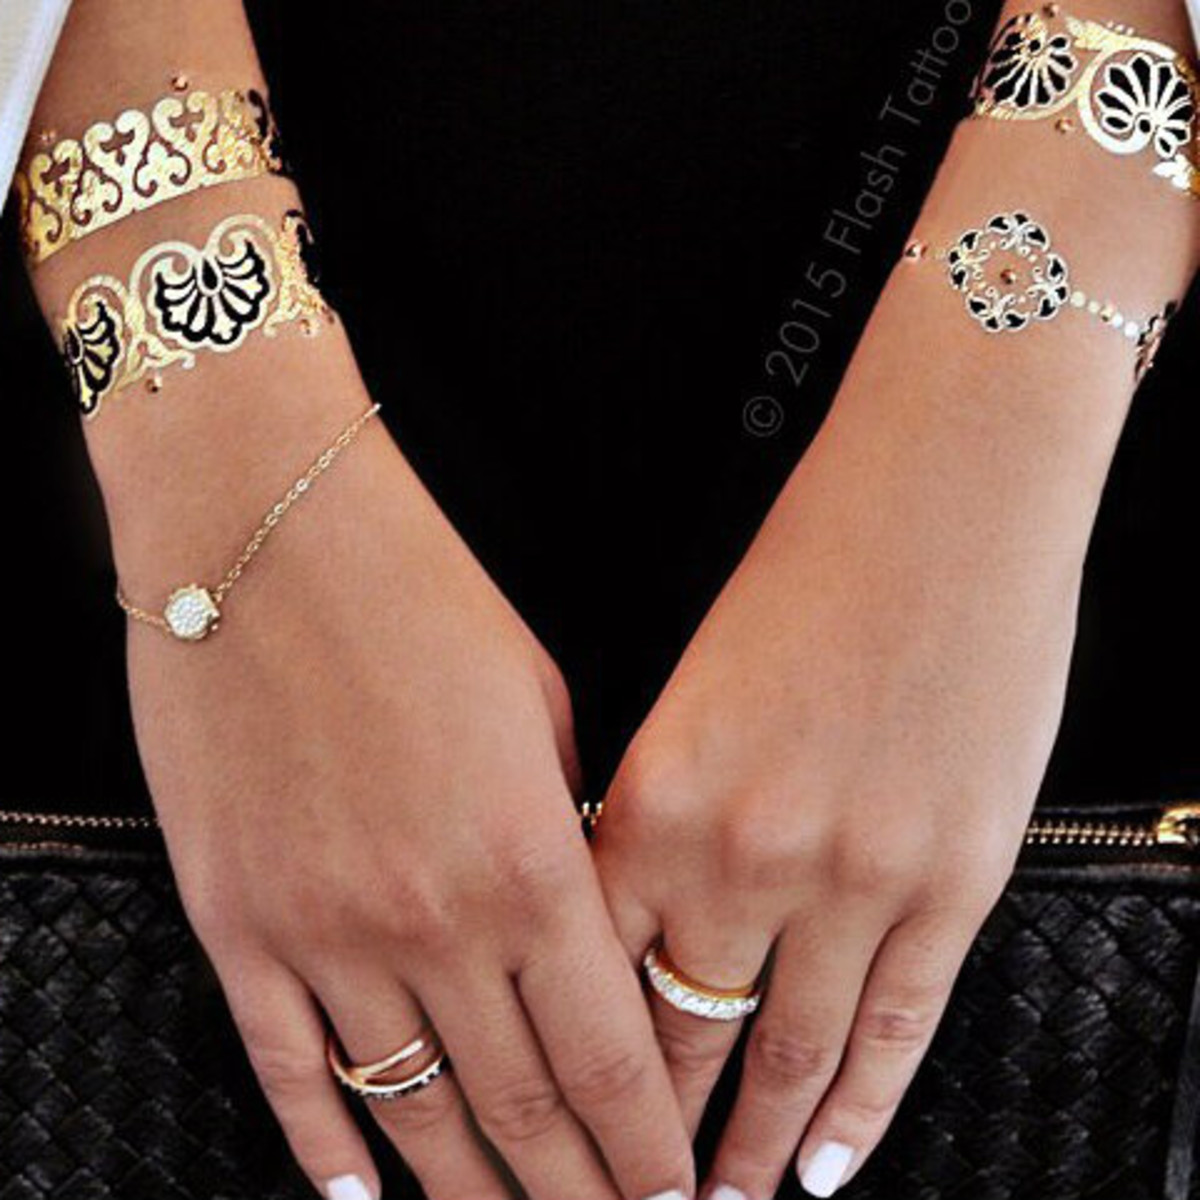 Aurelie Flash Tattoos